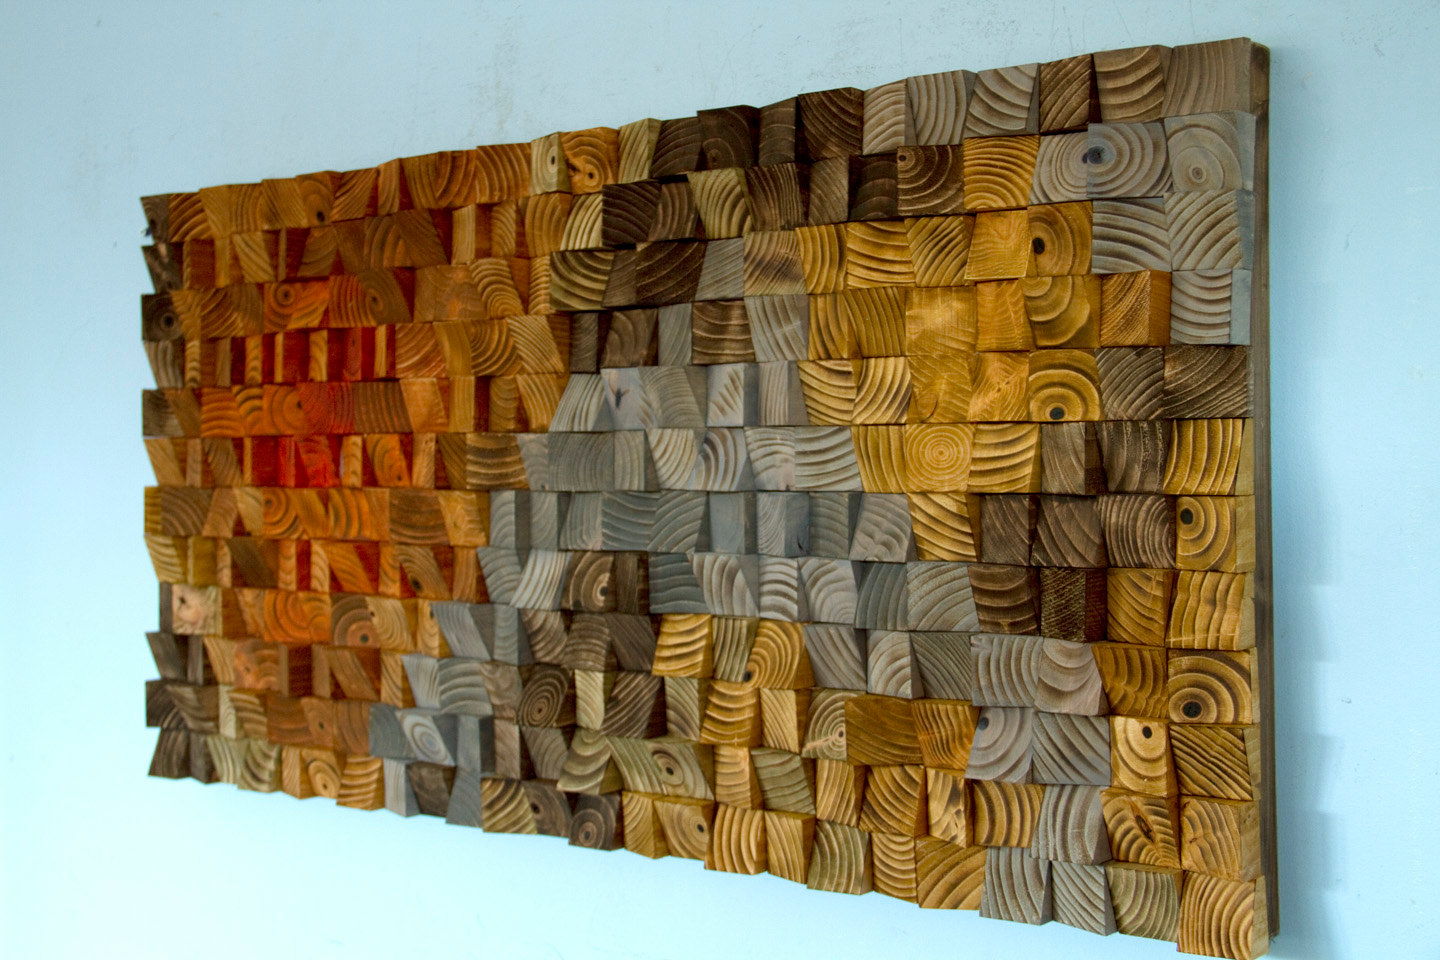 Rustic wood wall art wood wall sculpture abstract wood art art glamour - Sculpture wall decor ...